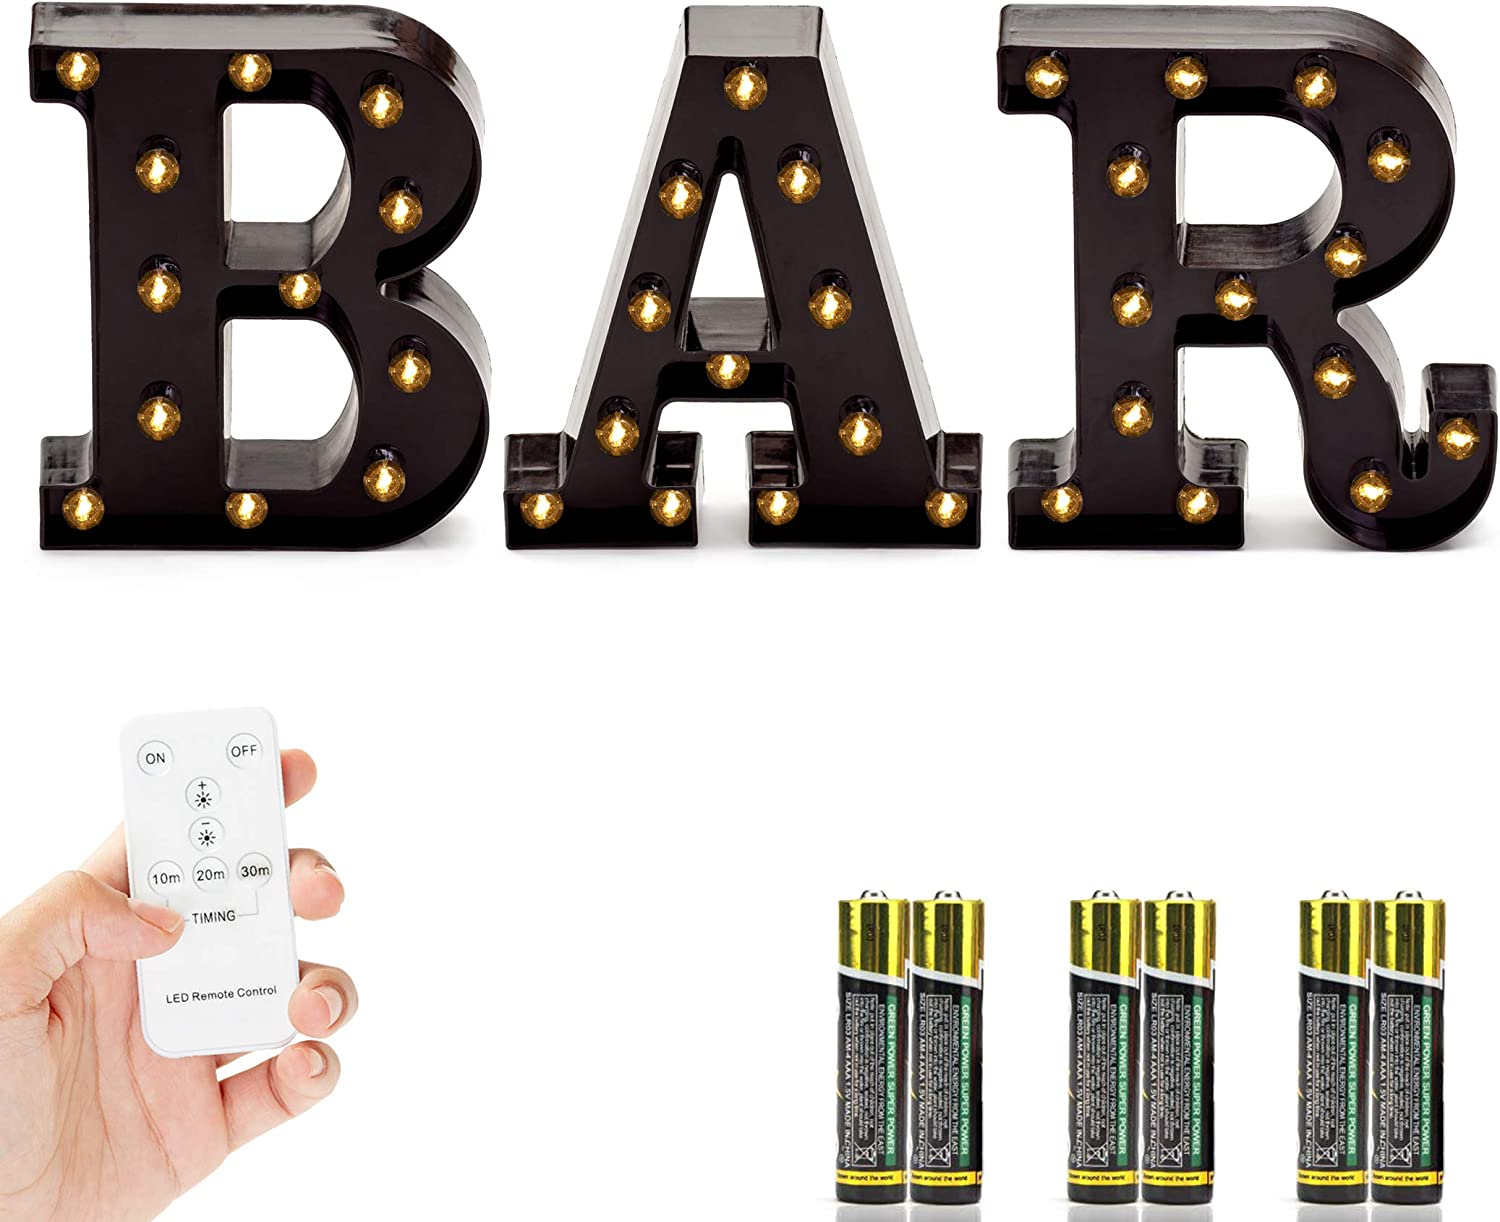 Marquee BAR Sign with Lights – Light Up Black B-A-R Letters for Home Decor or Business Signs – Includes Remote Control and Batteries – LED Lighted Vintage DIY Accessories and Decorations for Bars